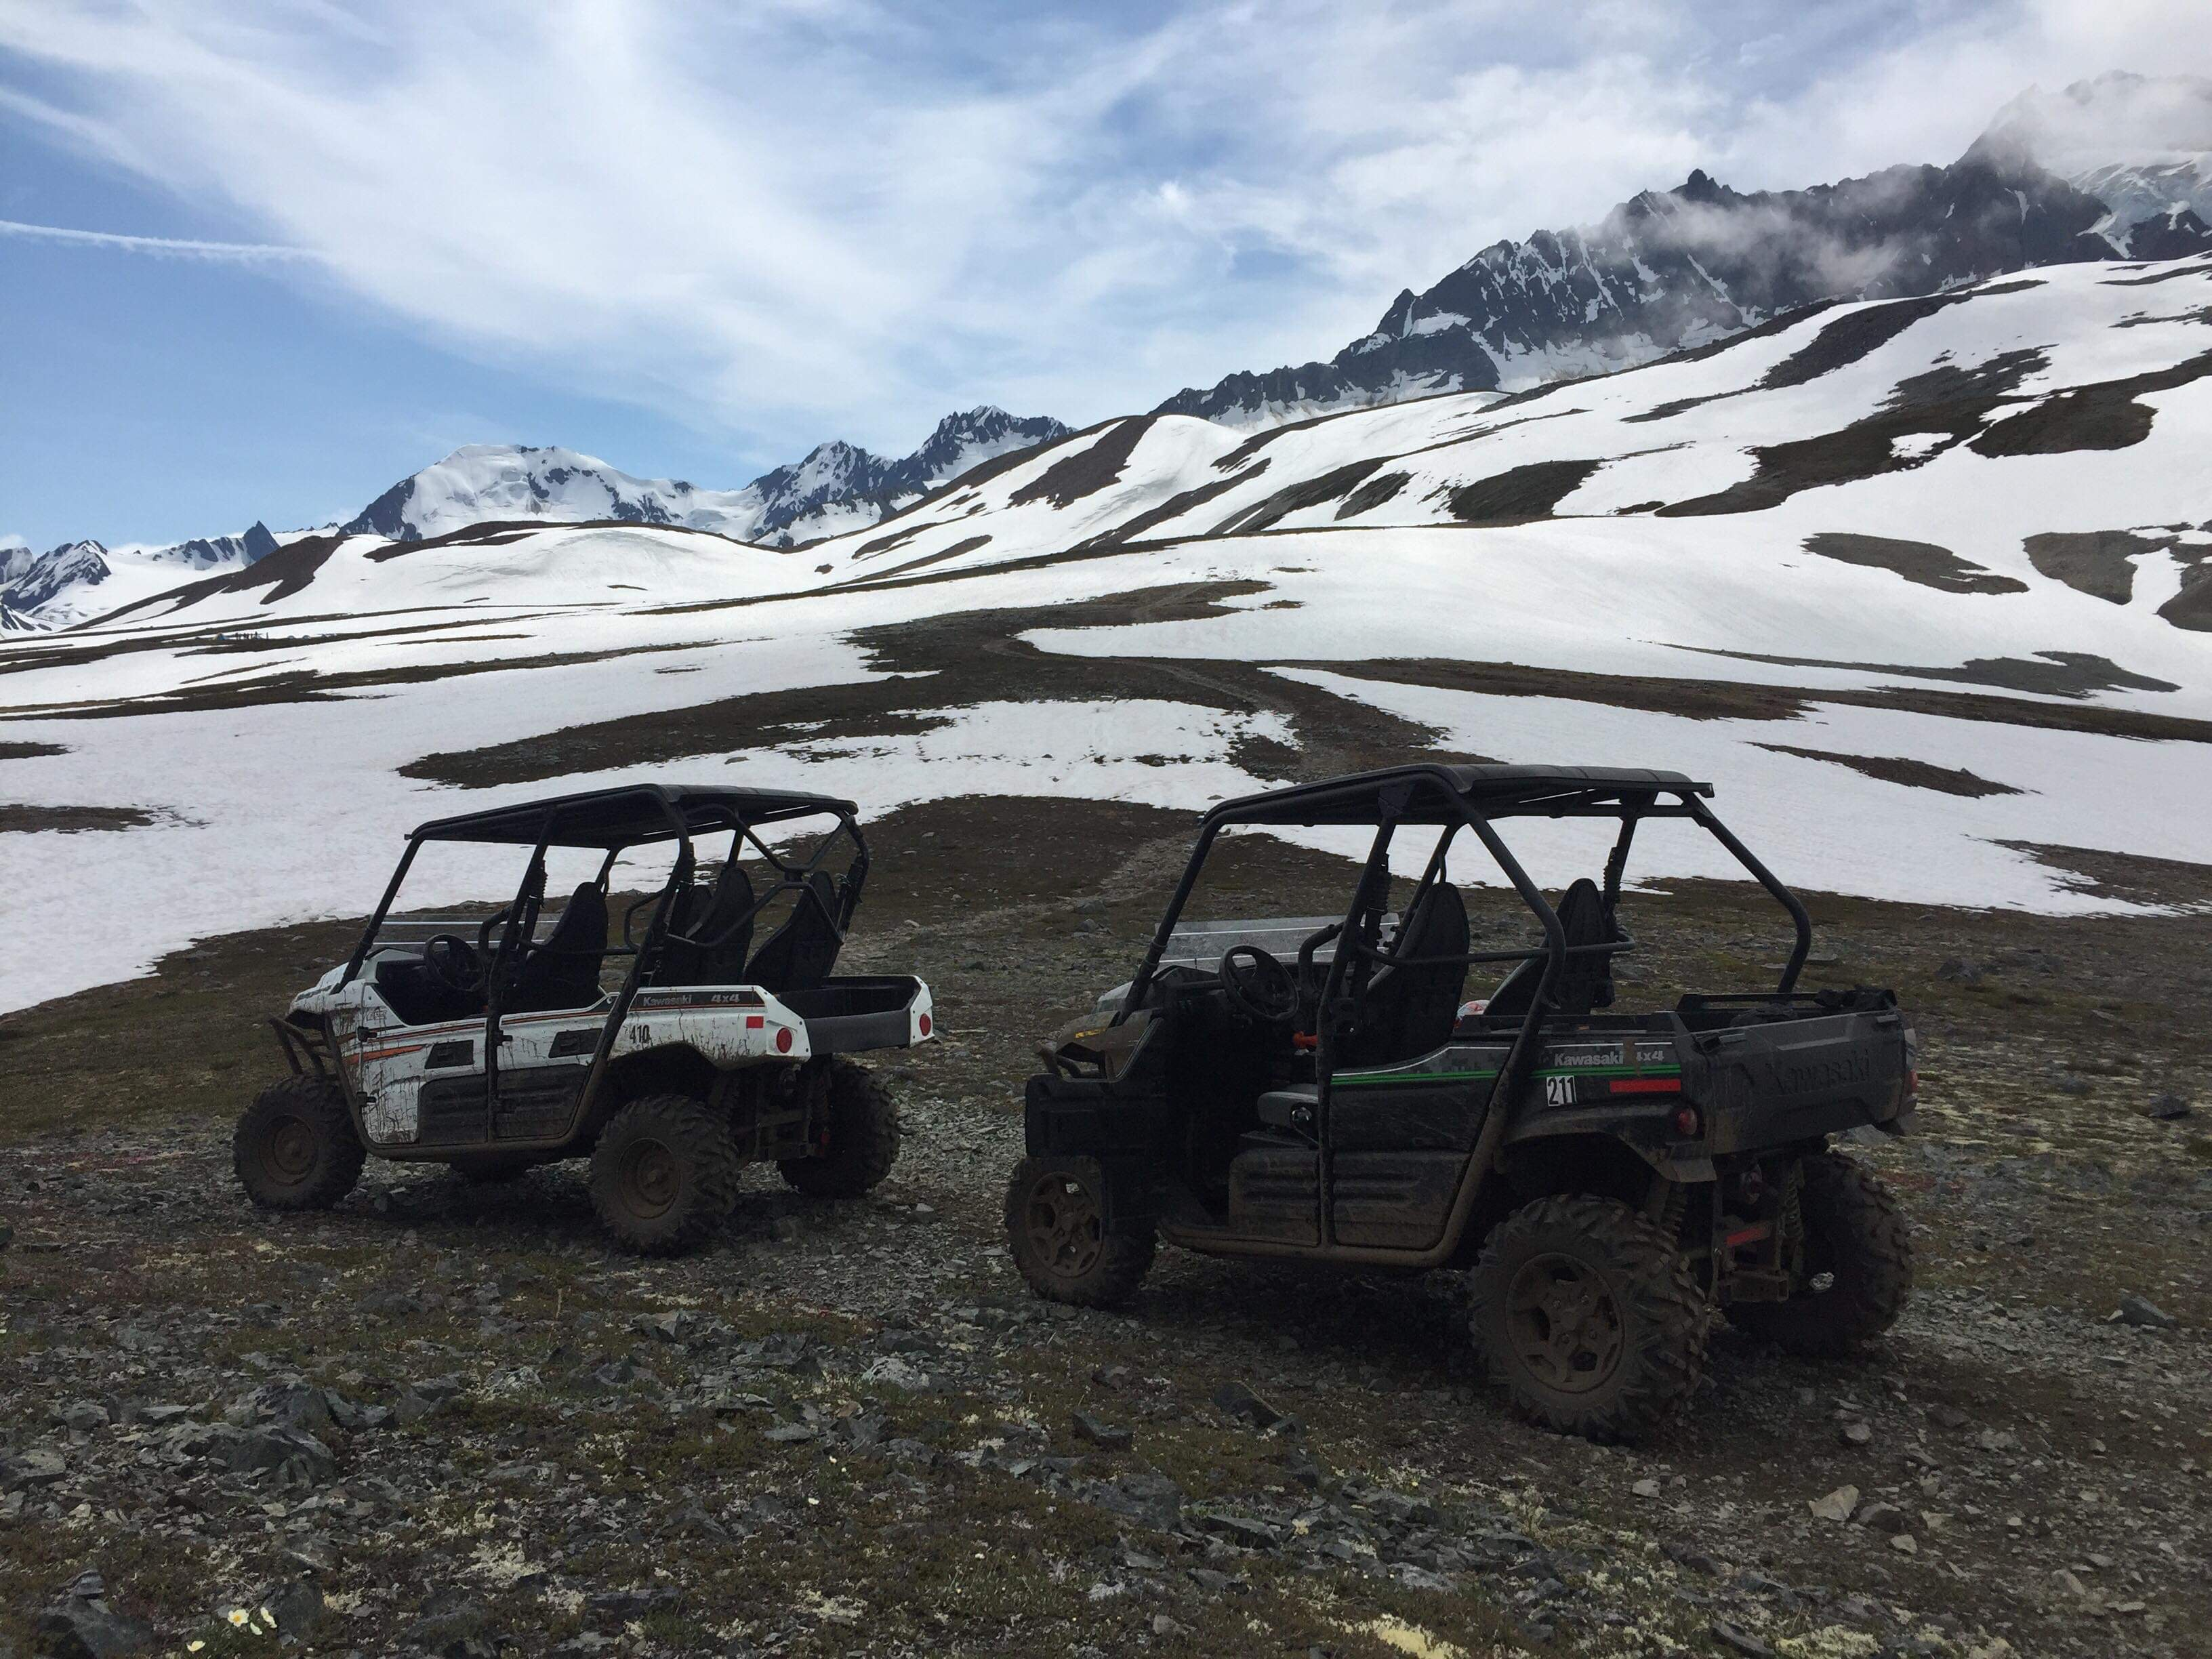 The top of the route leads to glacier views, and snow late into July